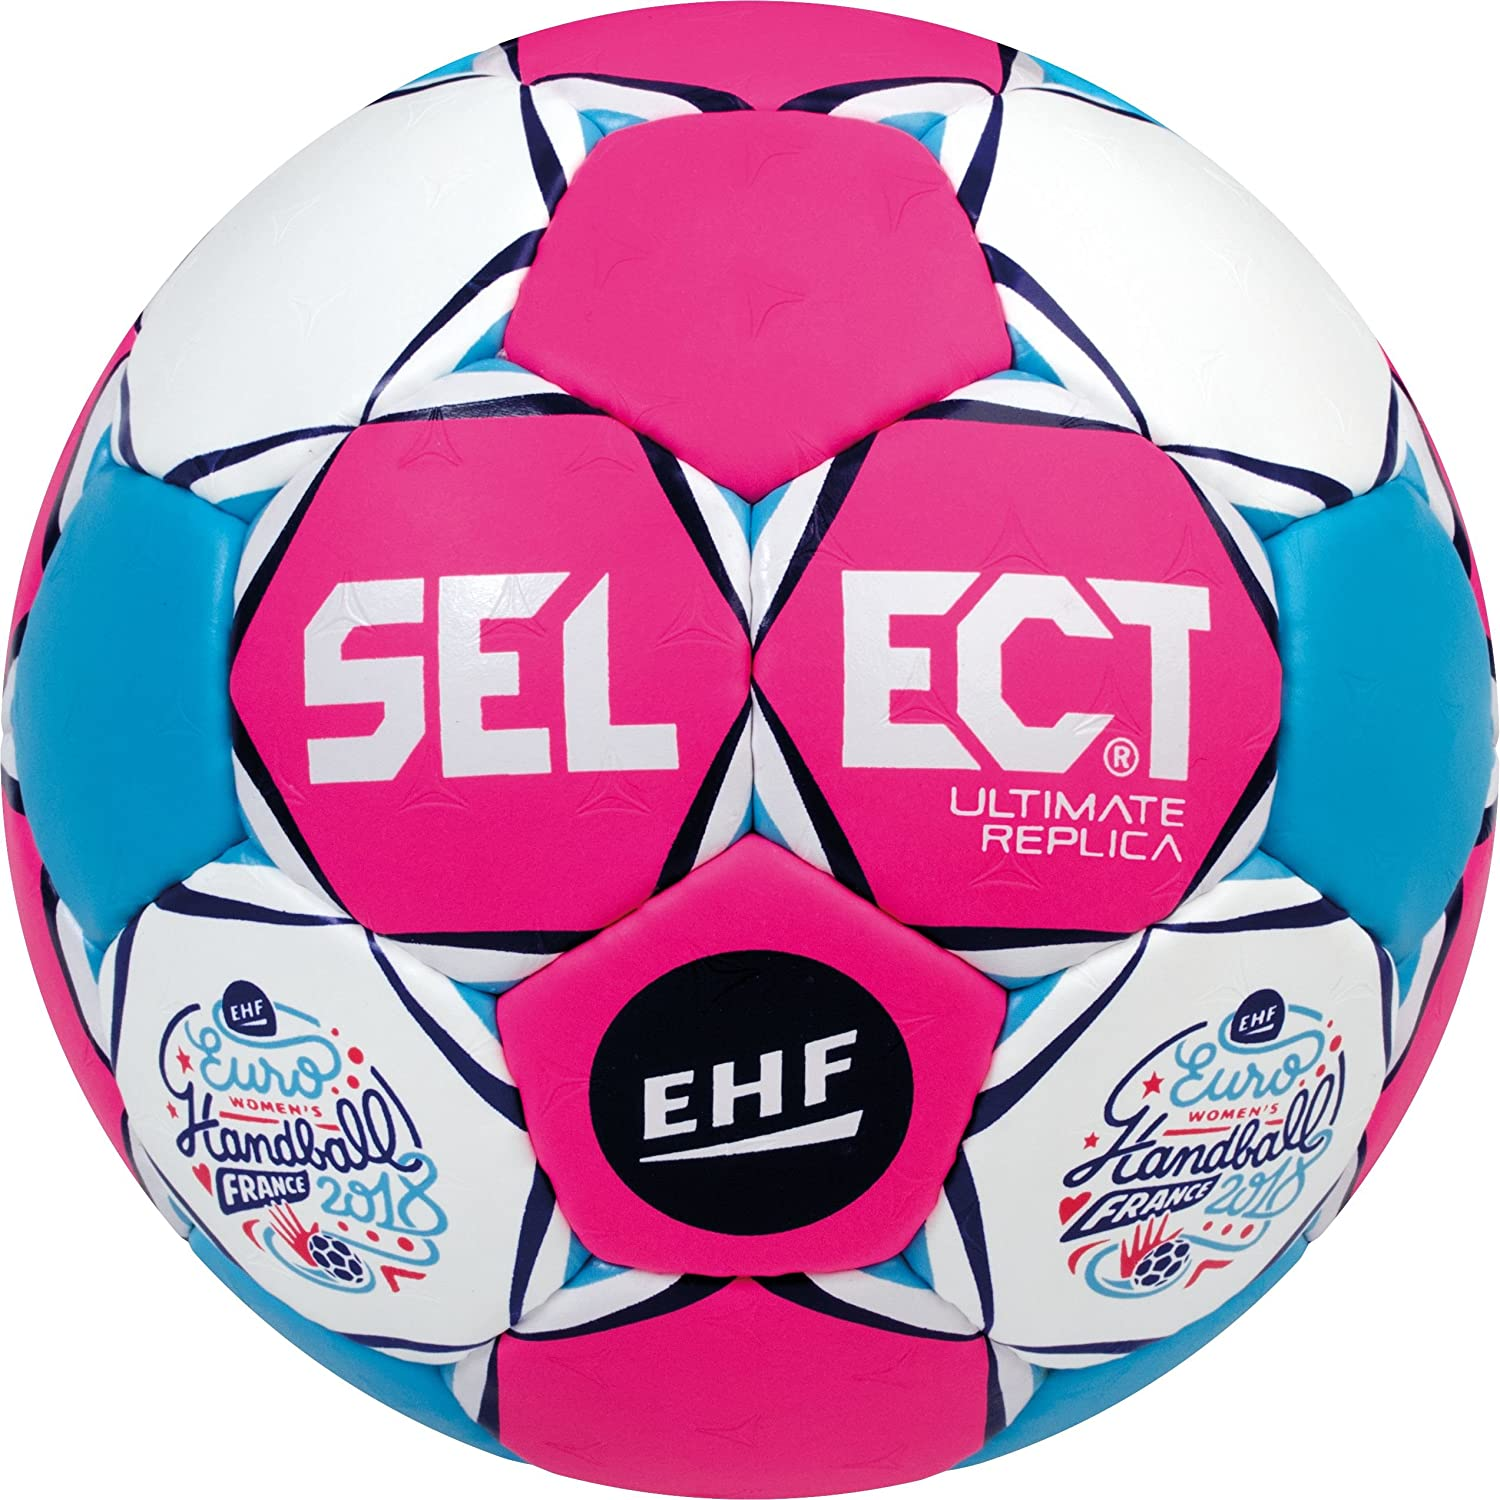 SELECT Ultimate Replica EC France 2018 de Balonmano, Todo el año ...